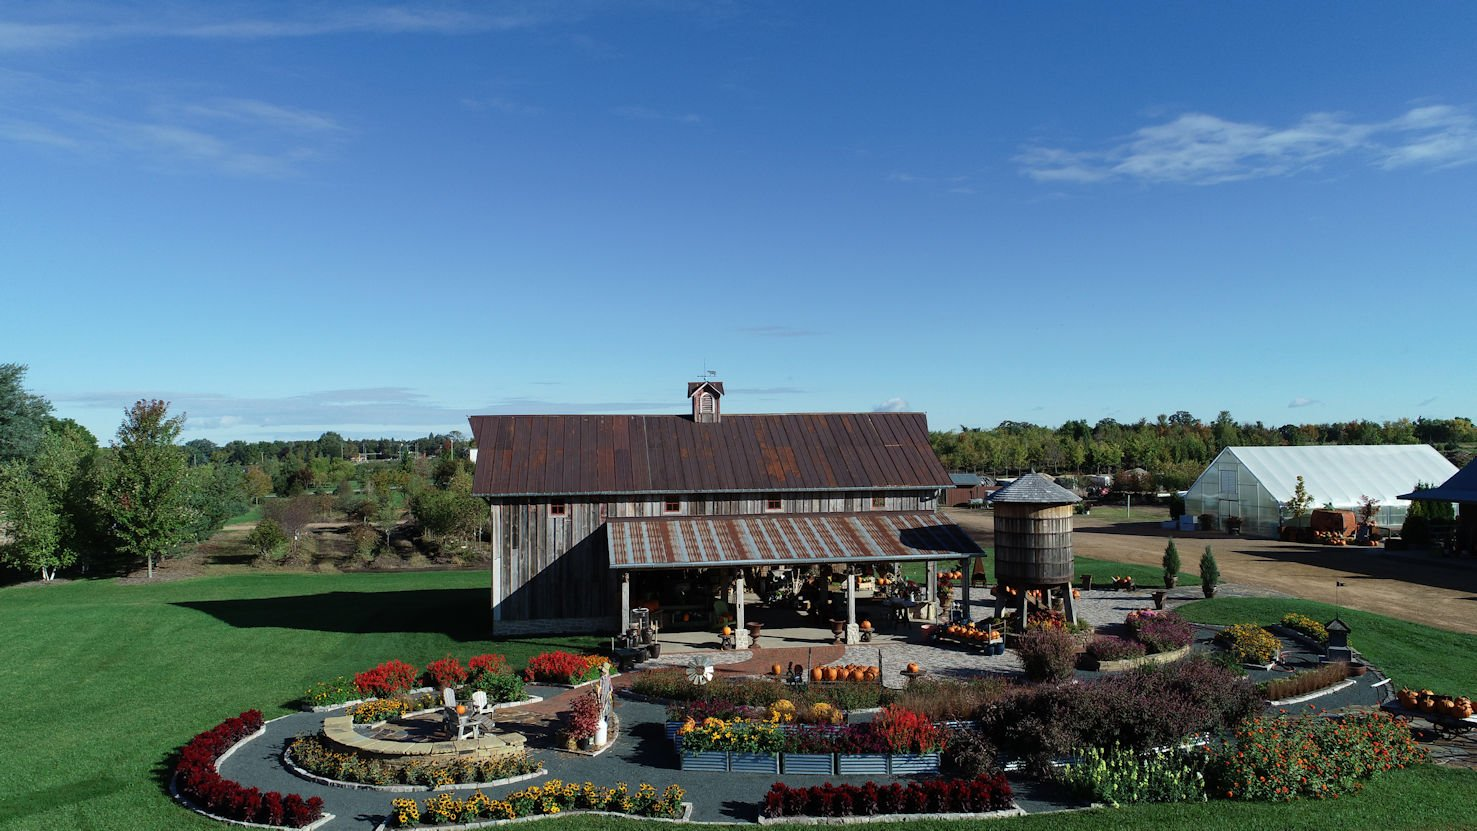 drone view of Hartmans barn, greenhouse, and tree farm